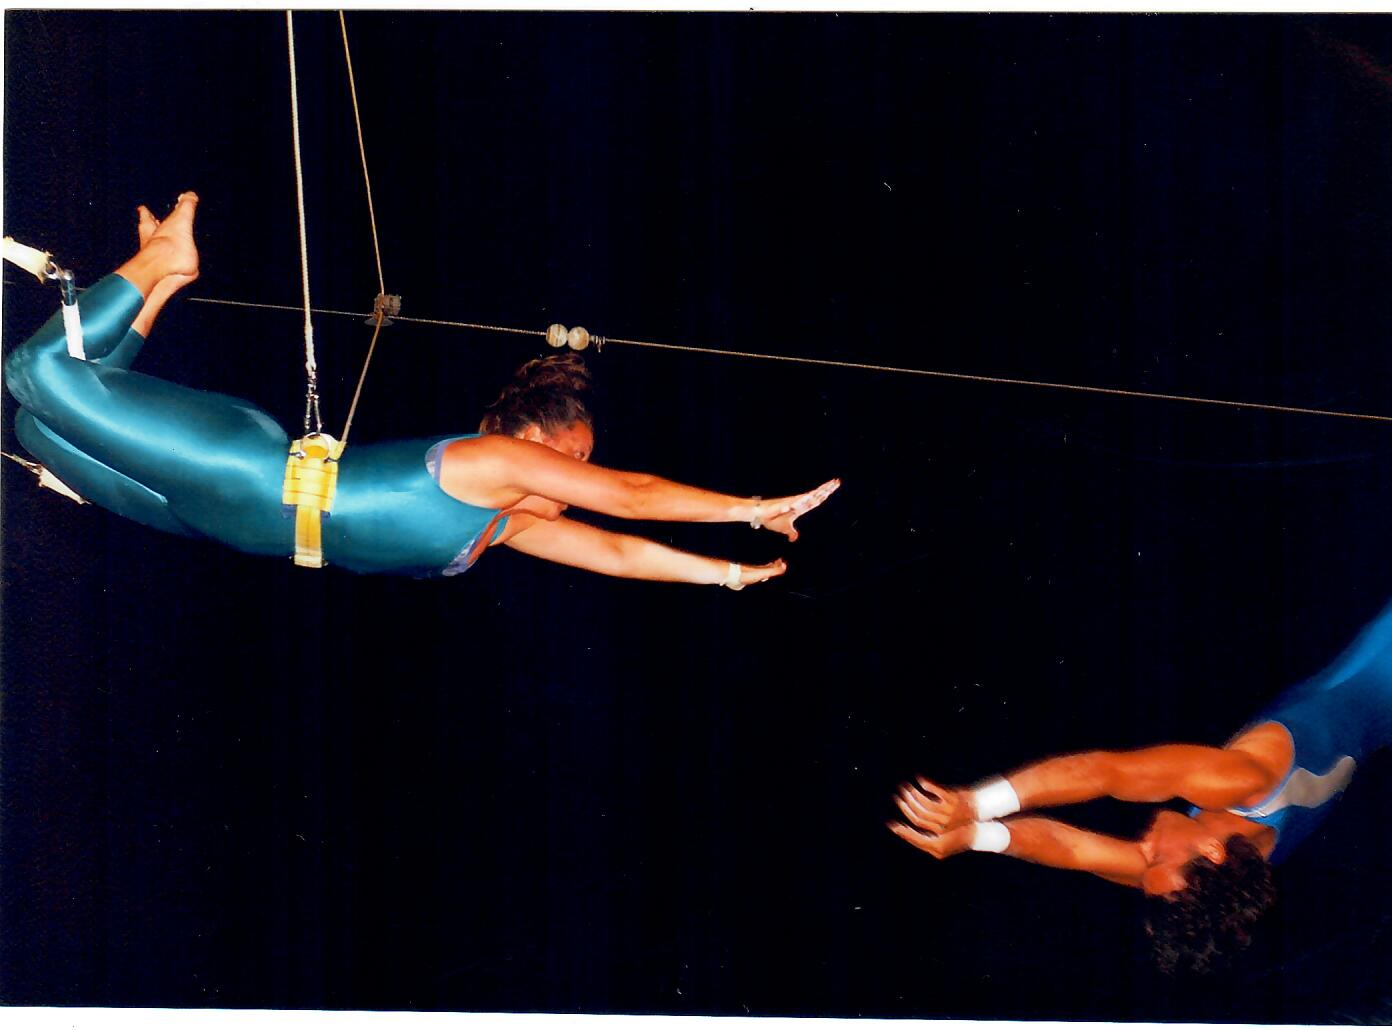 FUN FACT - Brenda has performed in multiple trapeze shows.